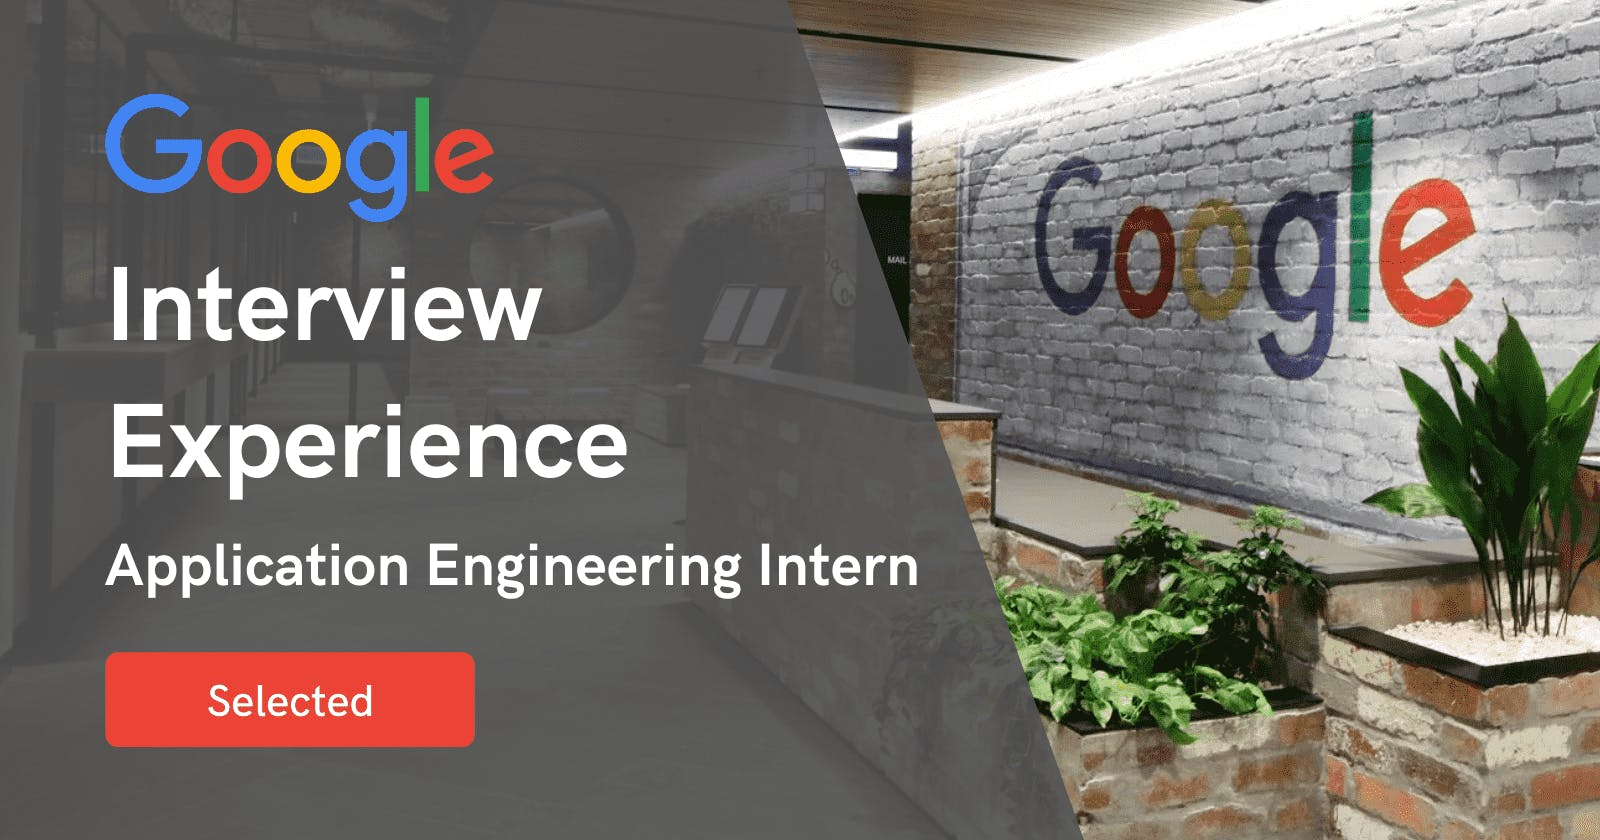 Interviewing Experience at Google - Application Engineering Intern